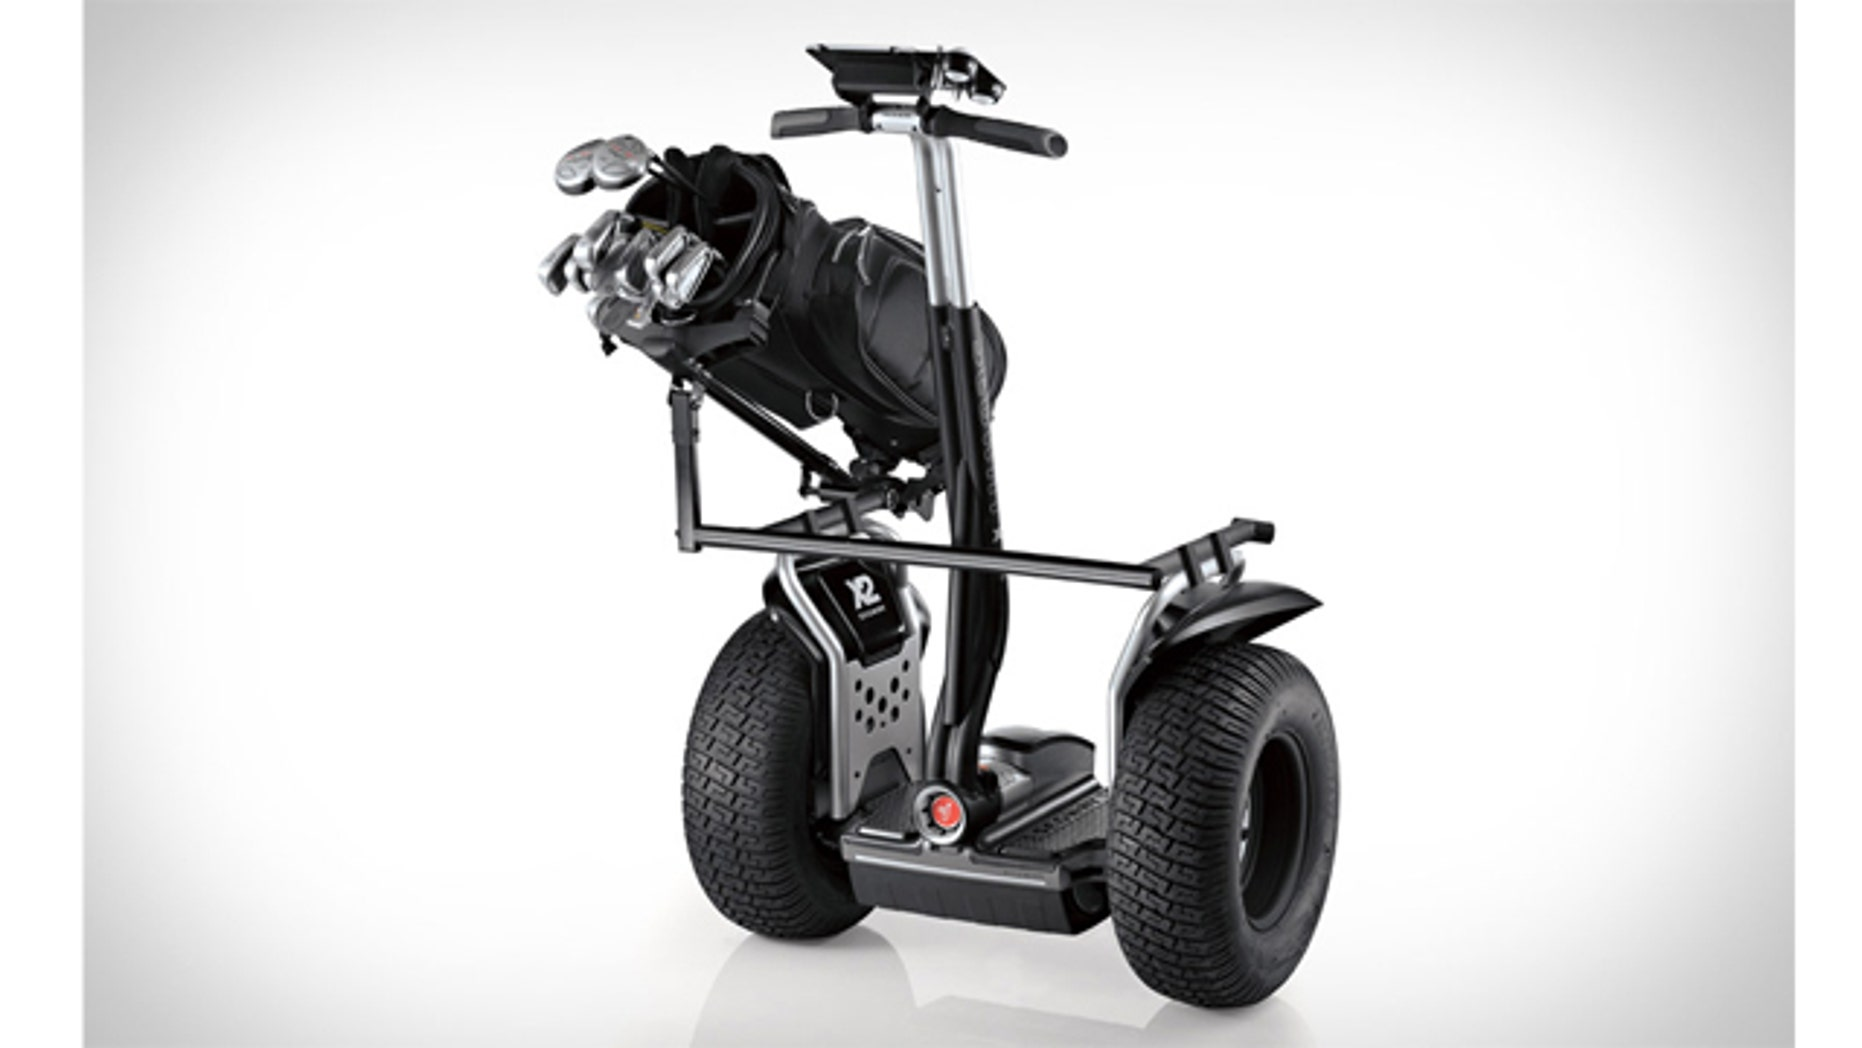 Liven up your links with the technology that's turning heads across the fairway and throughout the industry: the Segway x2 Golf.